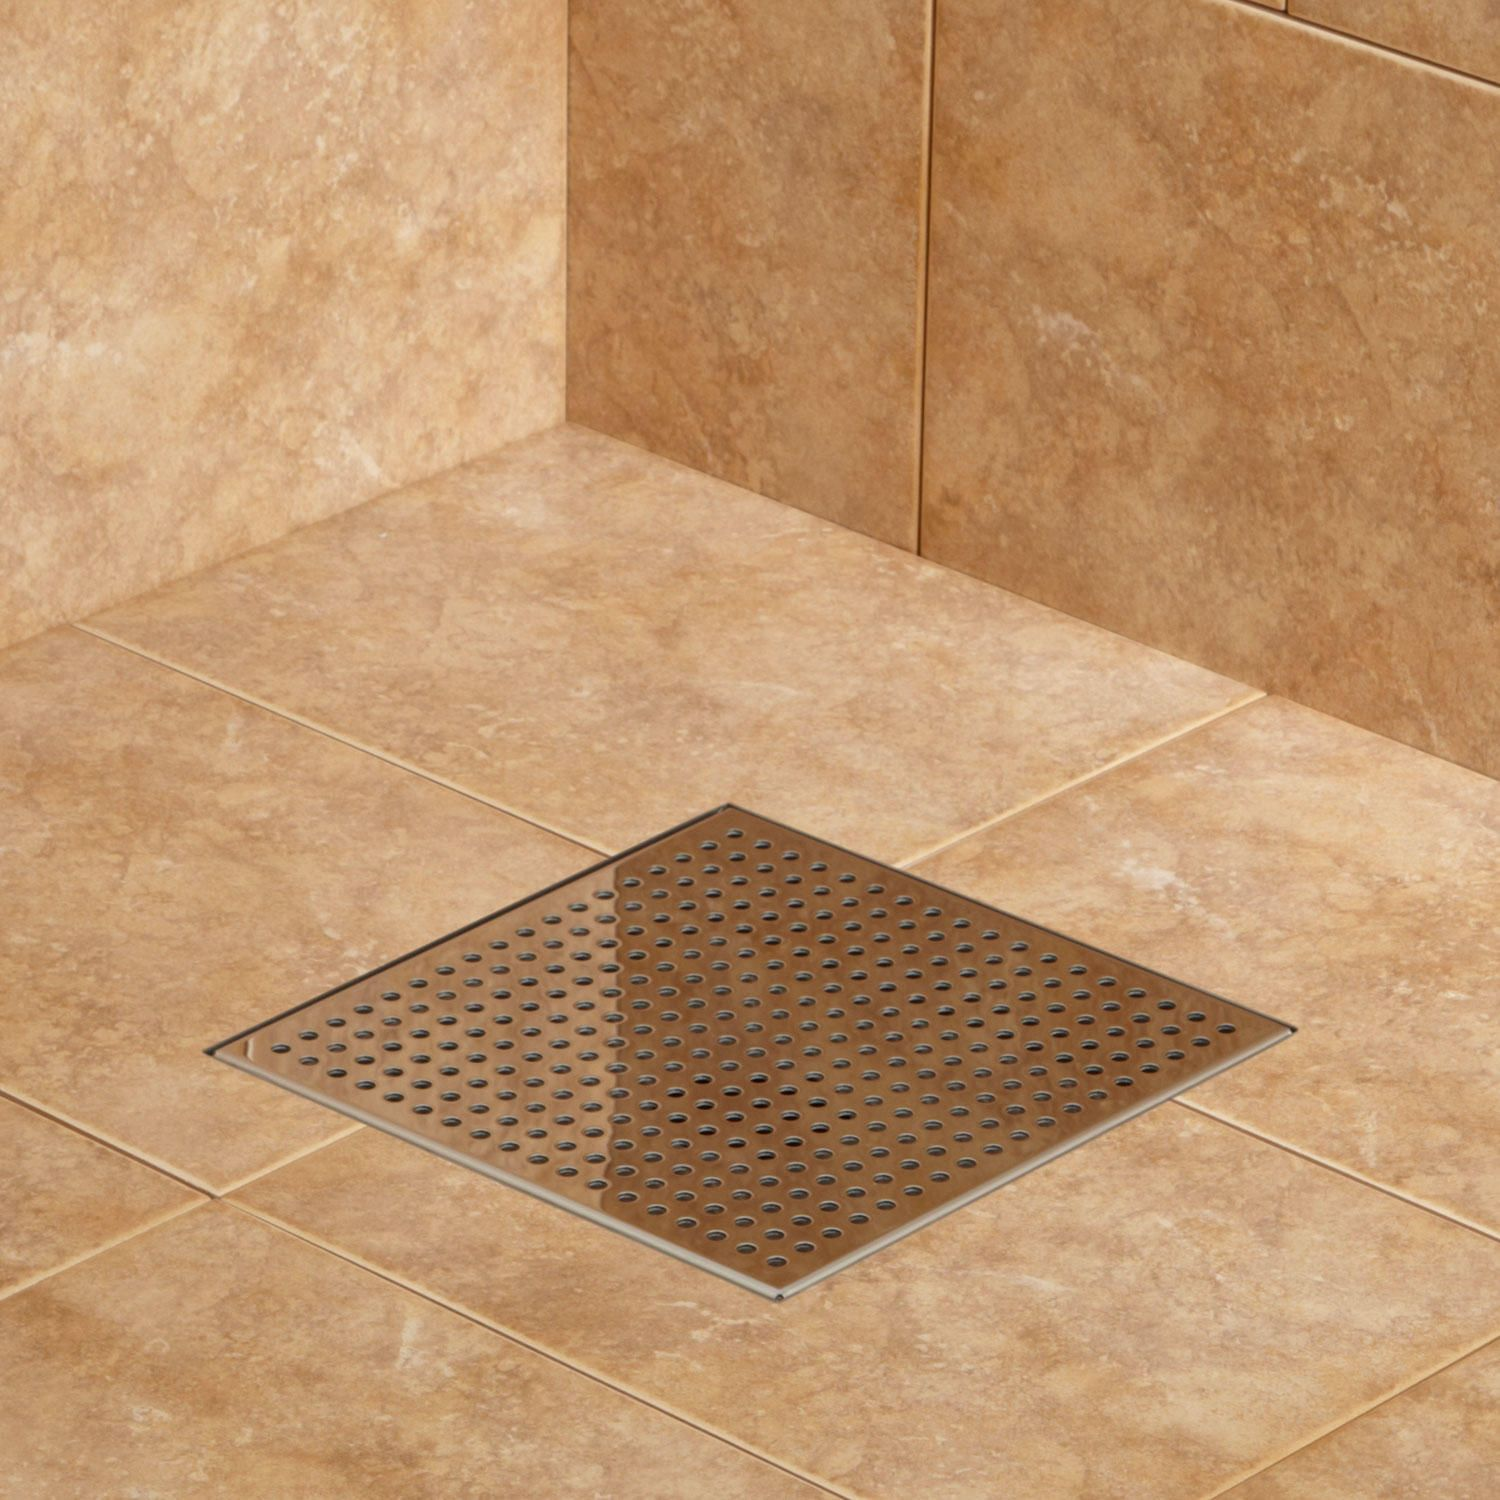 Werner Square Shower Drain | Stainless, Squares and Drain